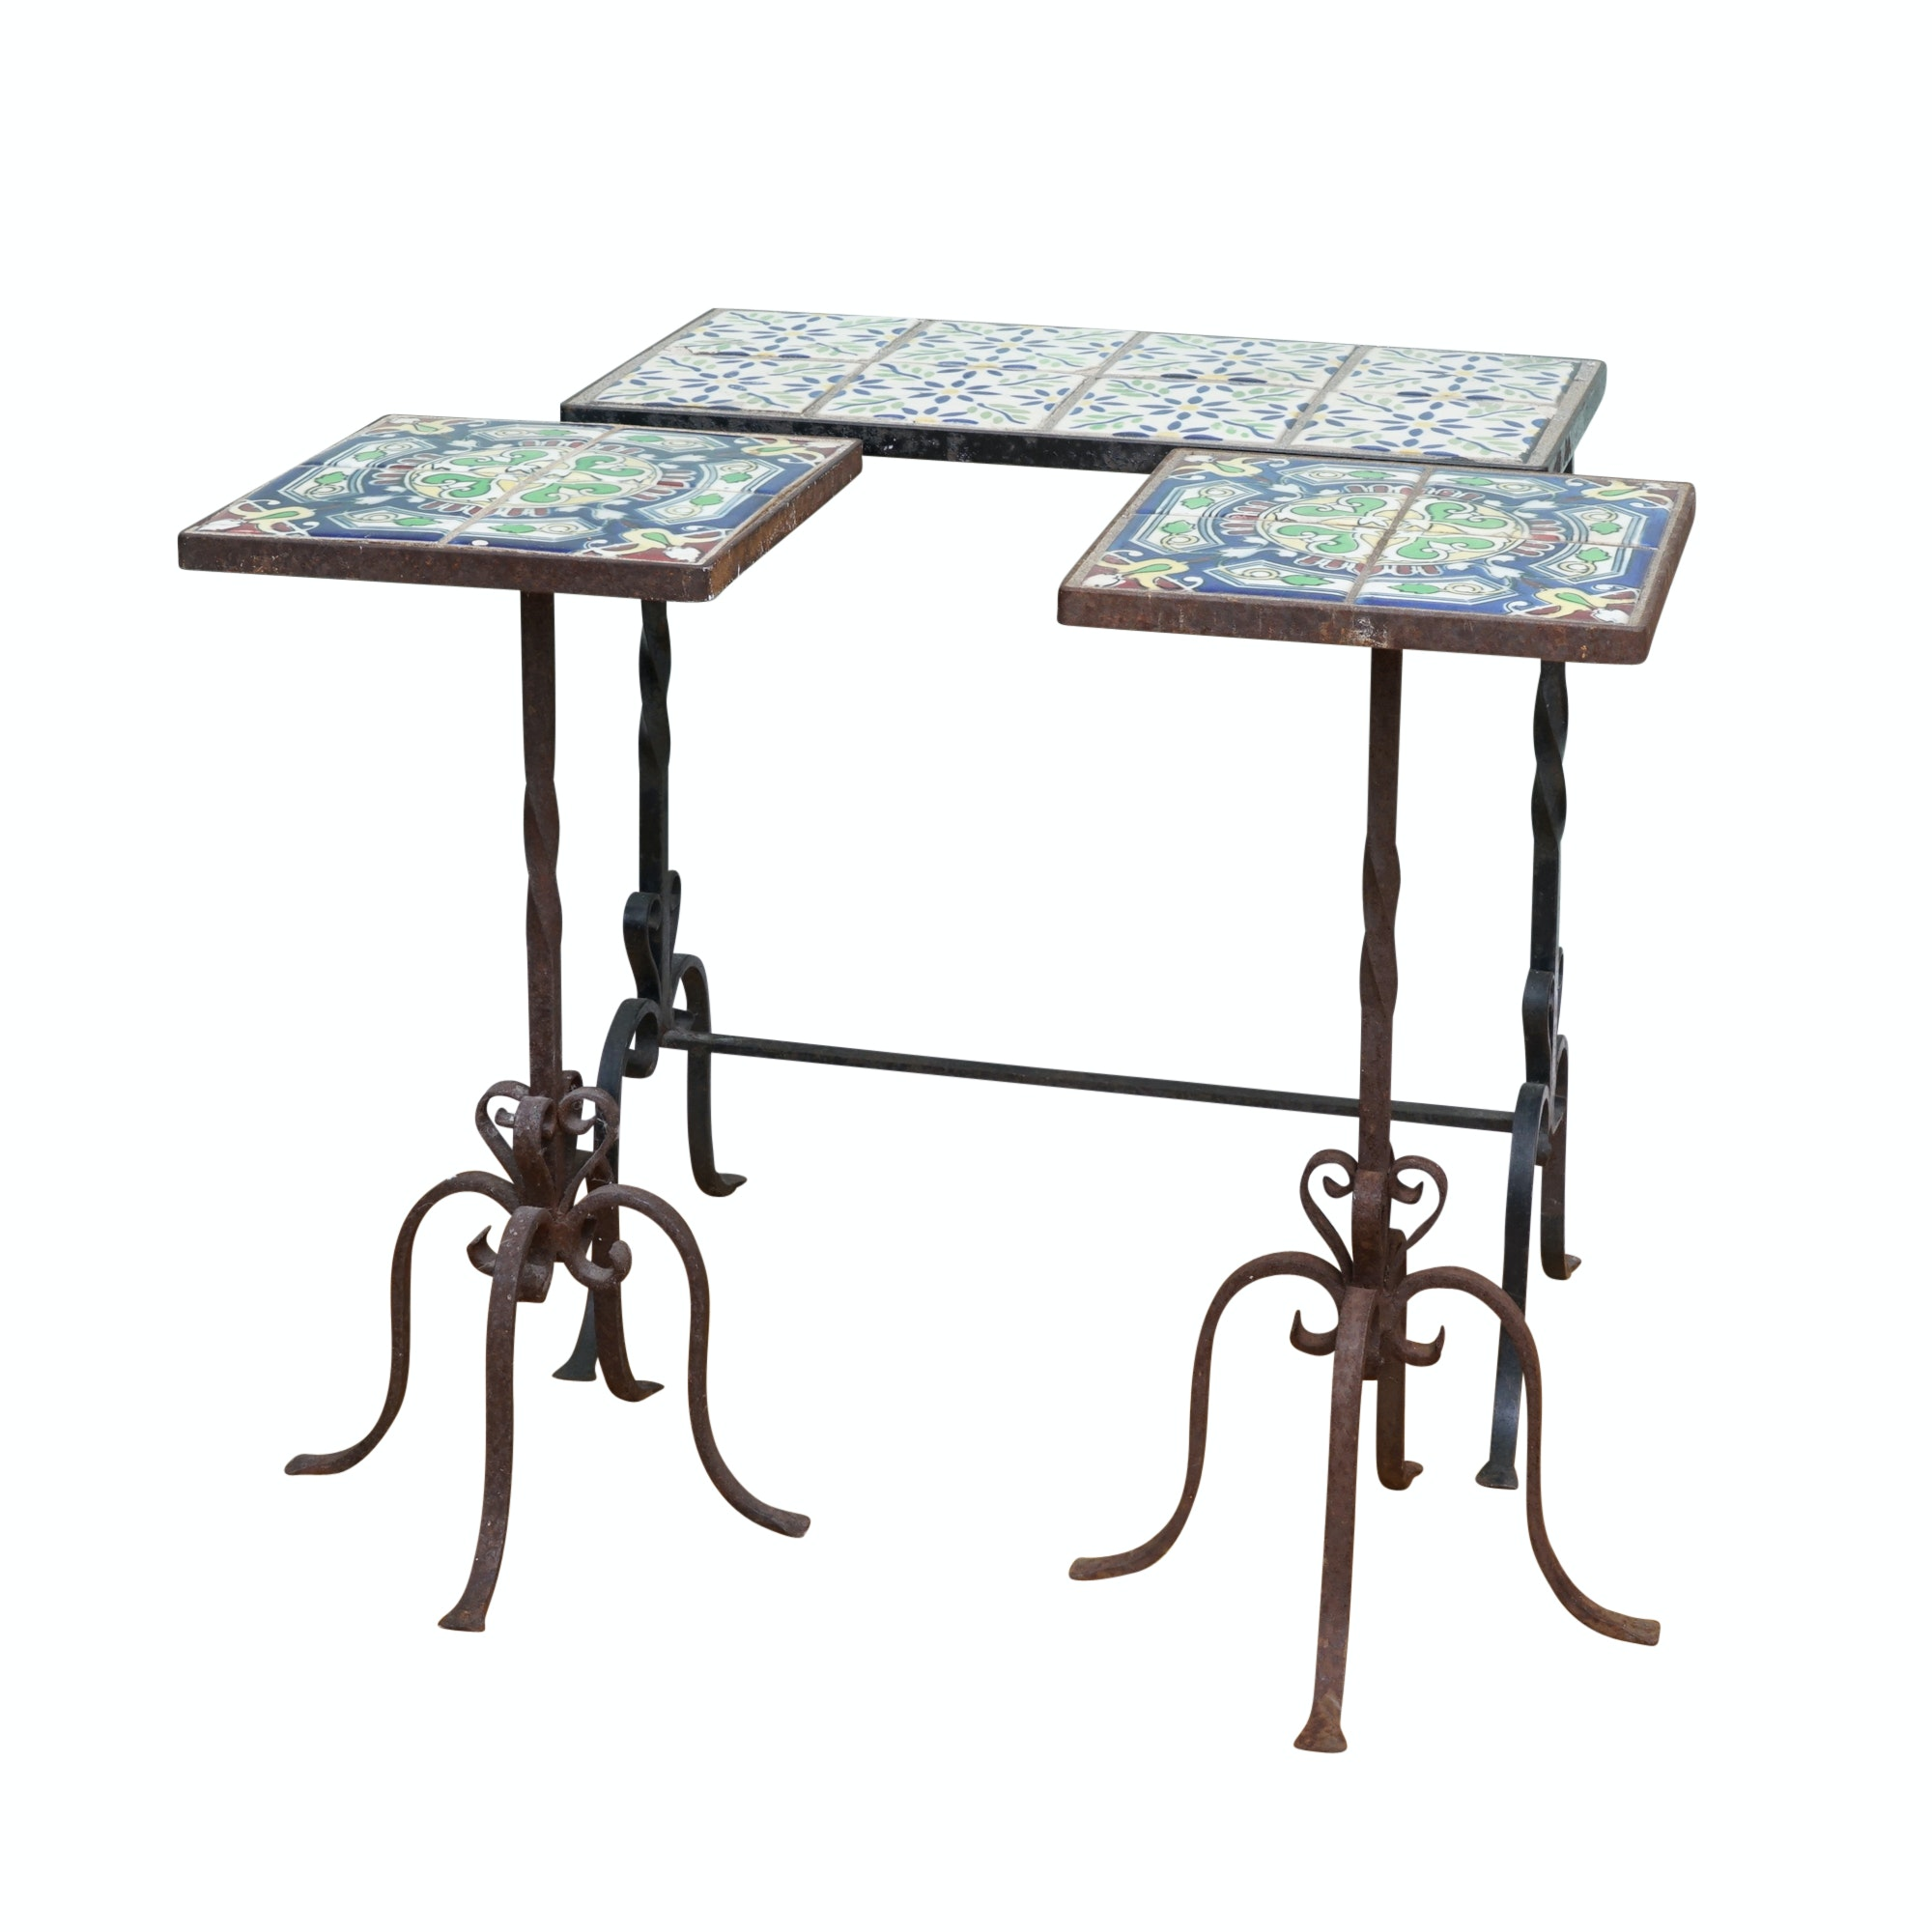 Wrought Iron Accent Tables with Hand-Painted Ceramic Tile Tops